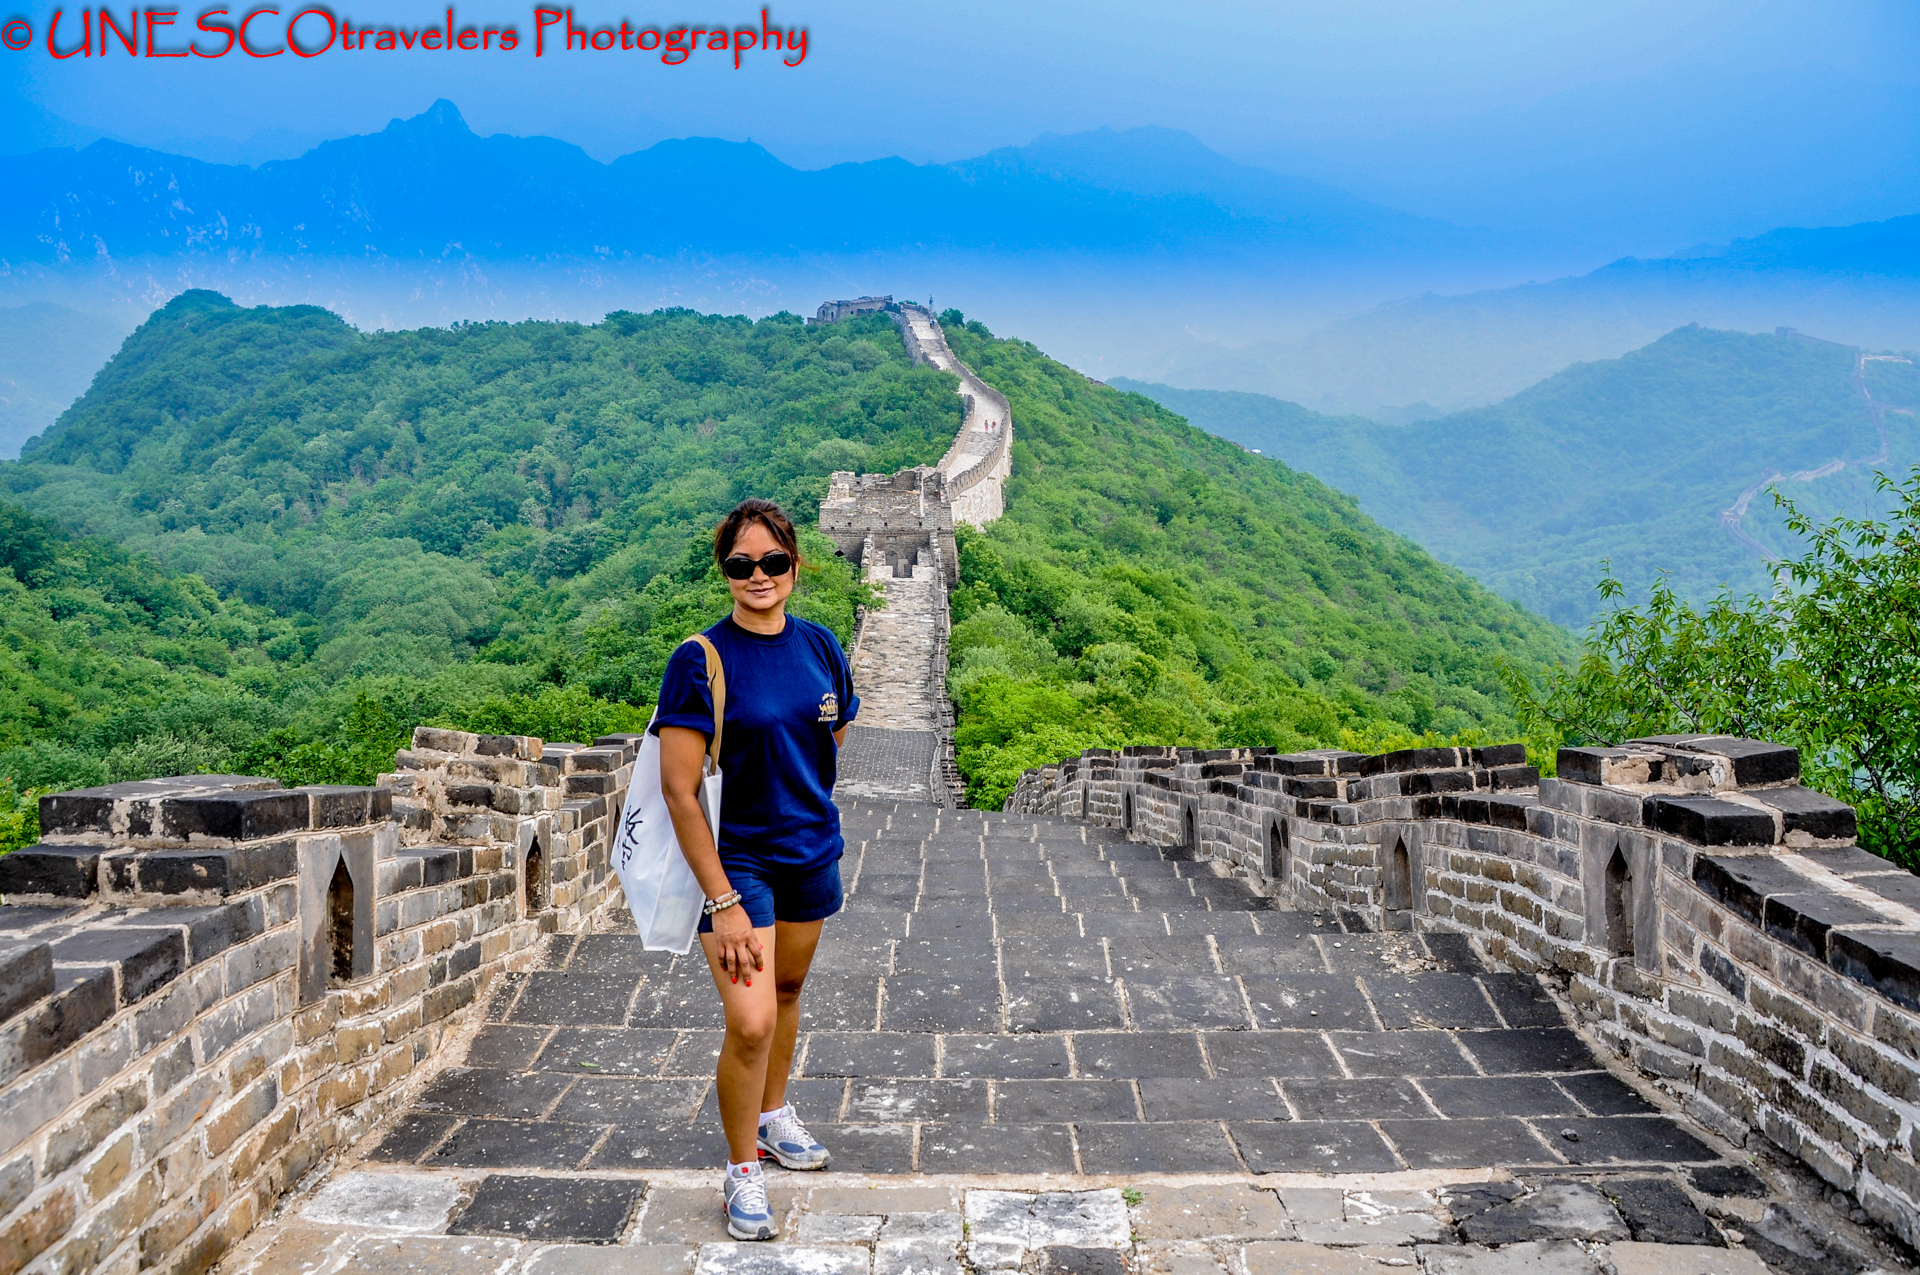 The Long Walk on the Mu Tian Yu Great Wall @ China The Great Wall - China By UNESCOtravelers